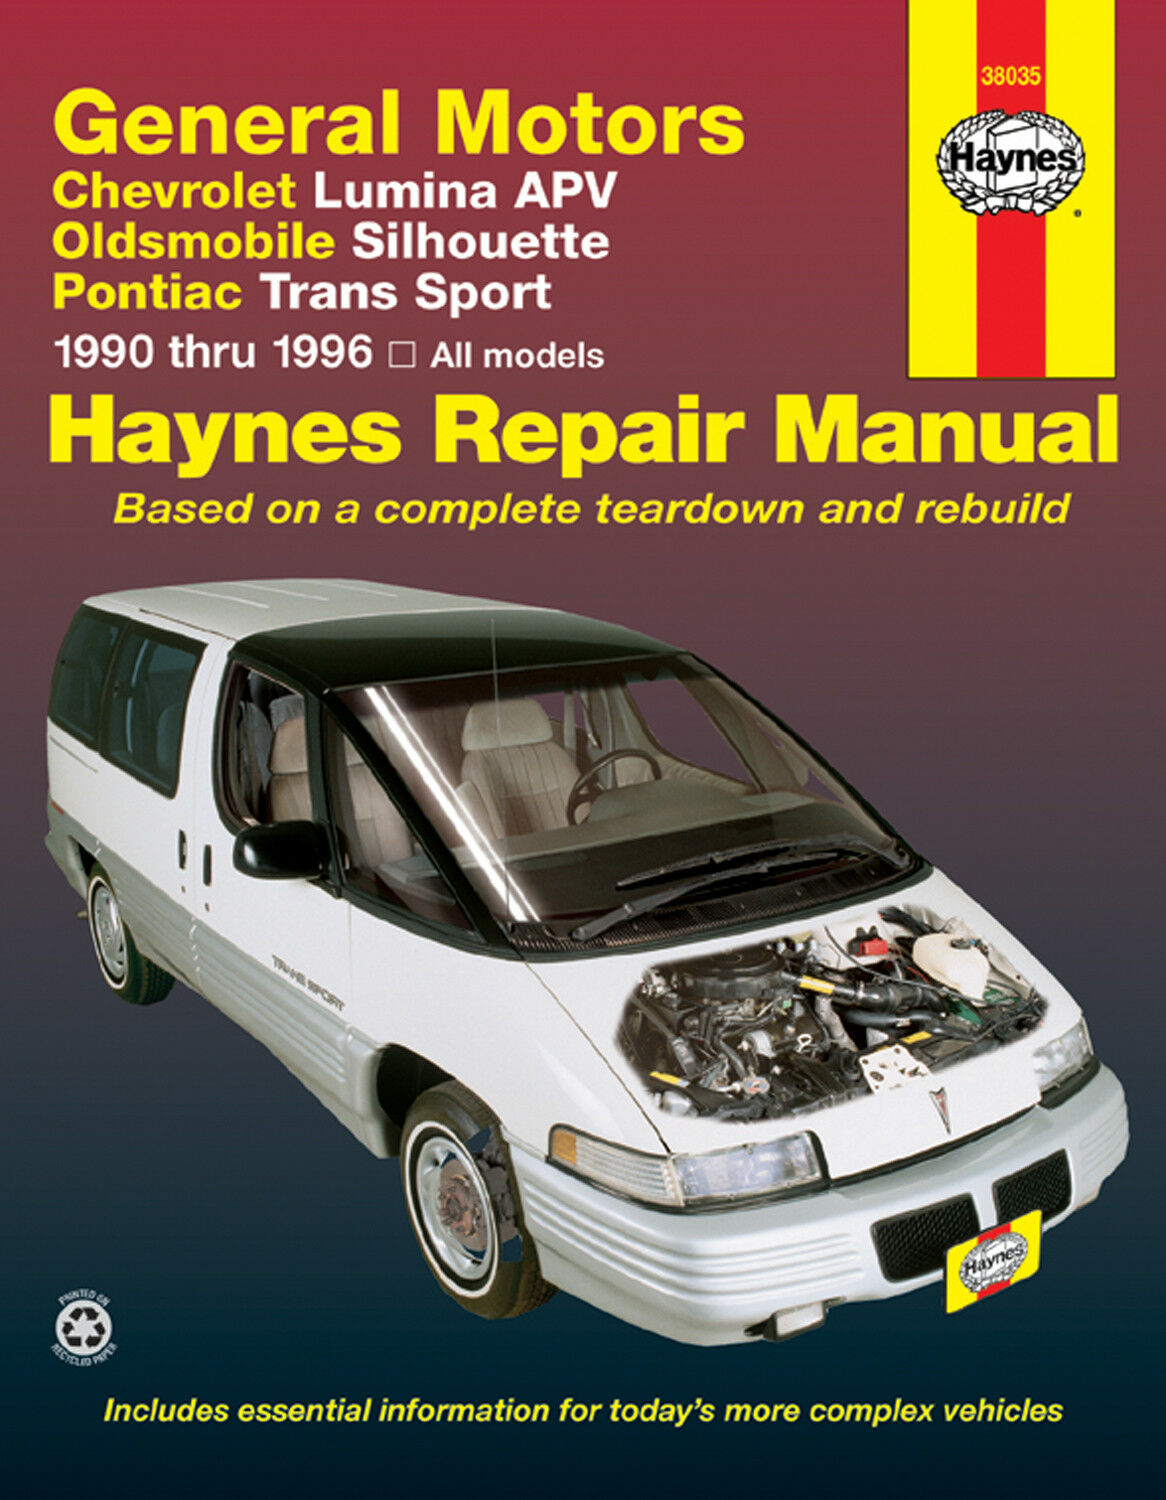 Haynes Publications 38035 Repair Manual 1 of 1Only 2 available ...